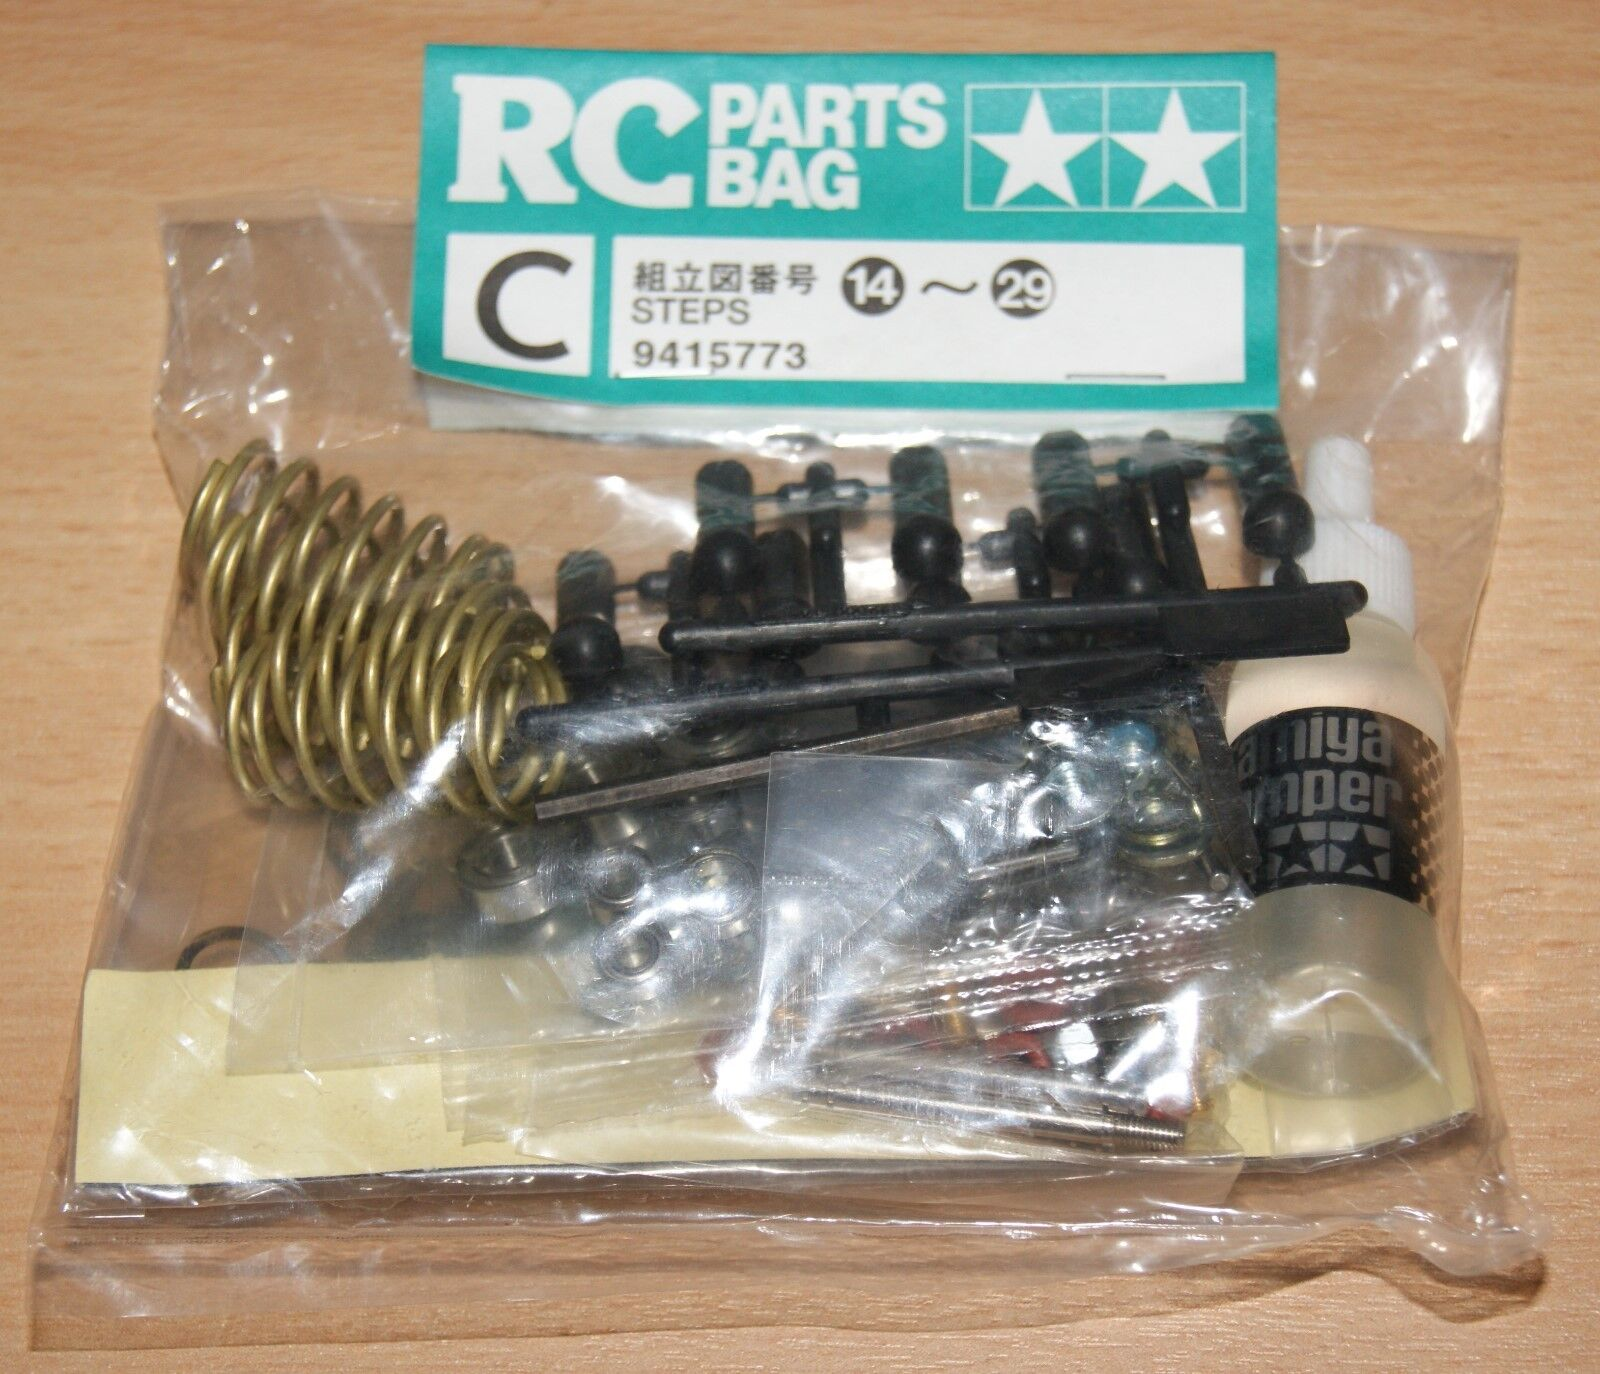 Tamiya 58272 Corvette C5-R MR-S TT TA04S, 9415773 1941573 Metal Parts Bag C, NIP